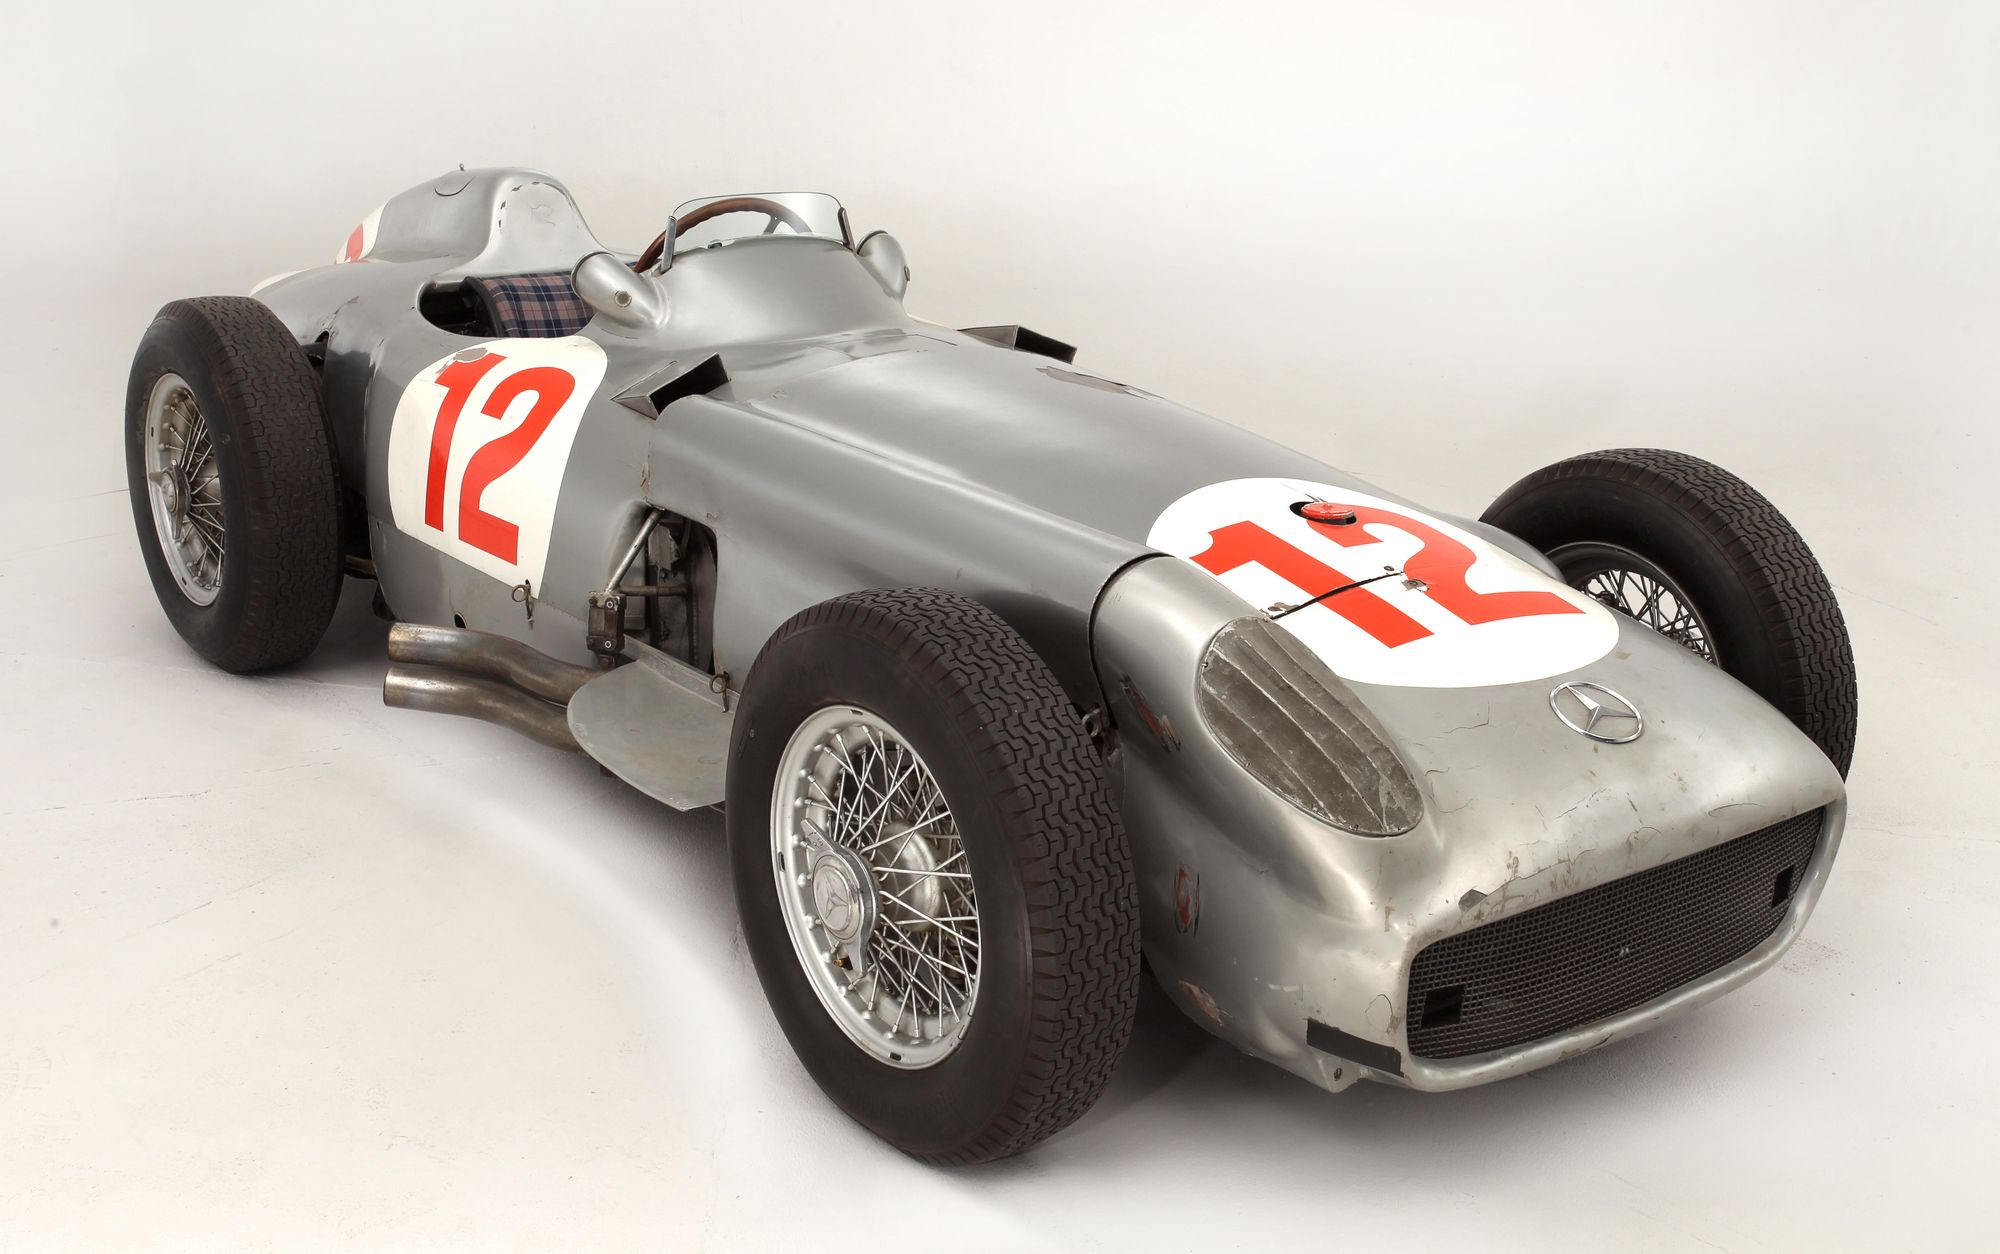 1954 Mercedes W196 record breaker